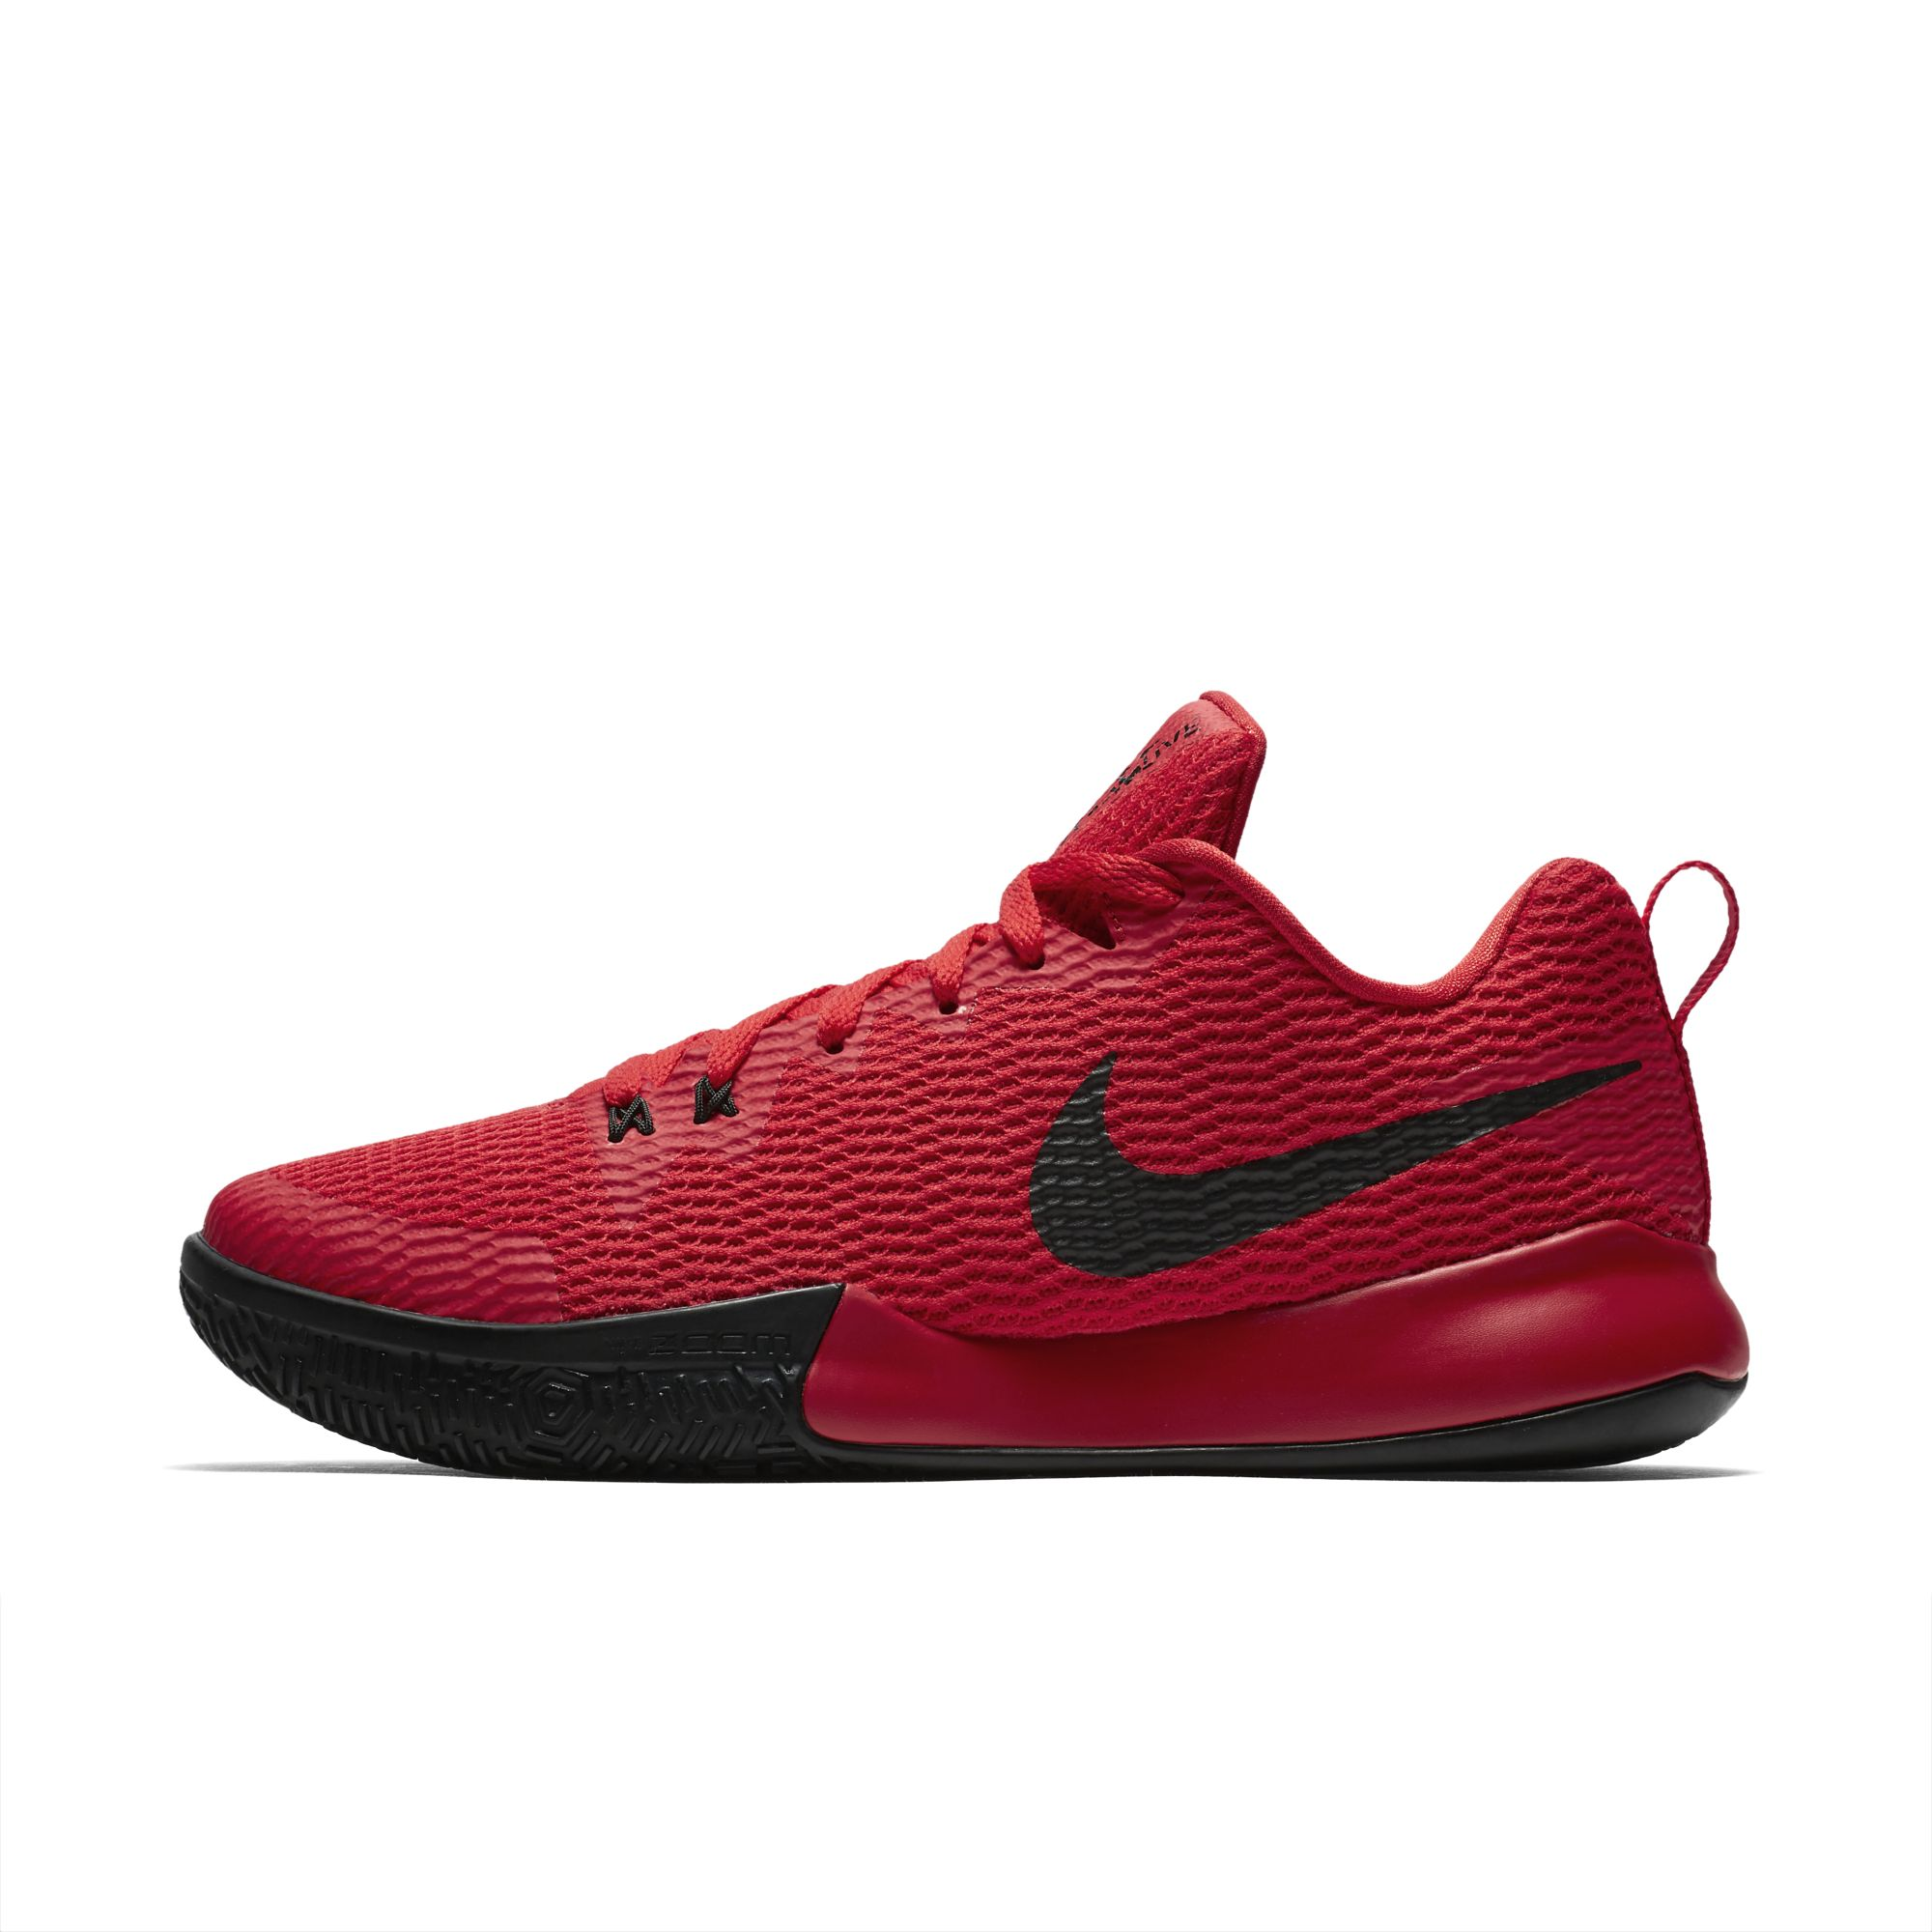 Leia Contiene sombra  The Nike Zoom Live 2 is Nearly Identical to the Original - WearTesters